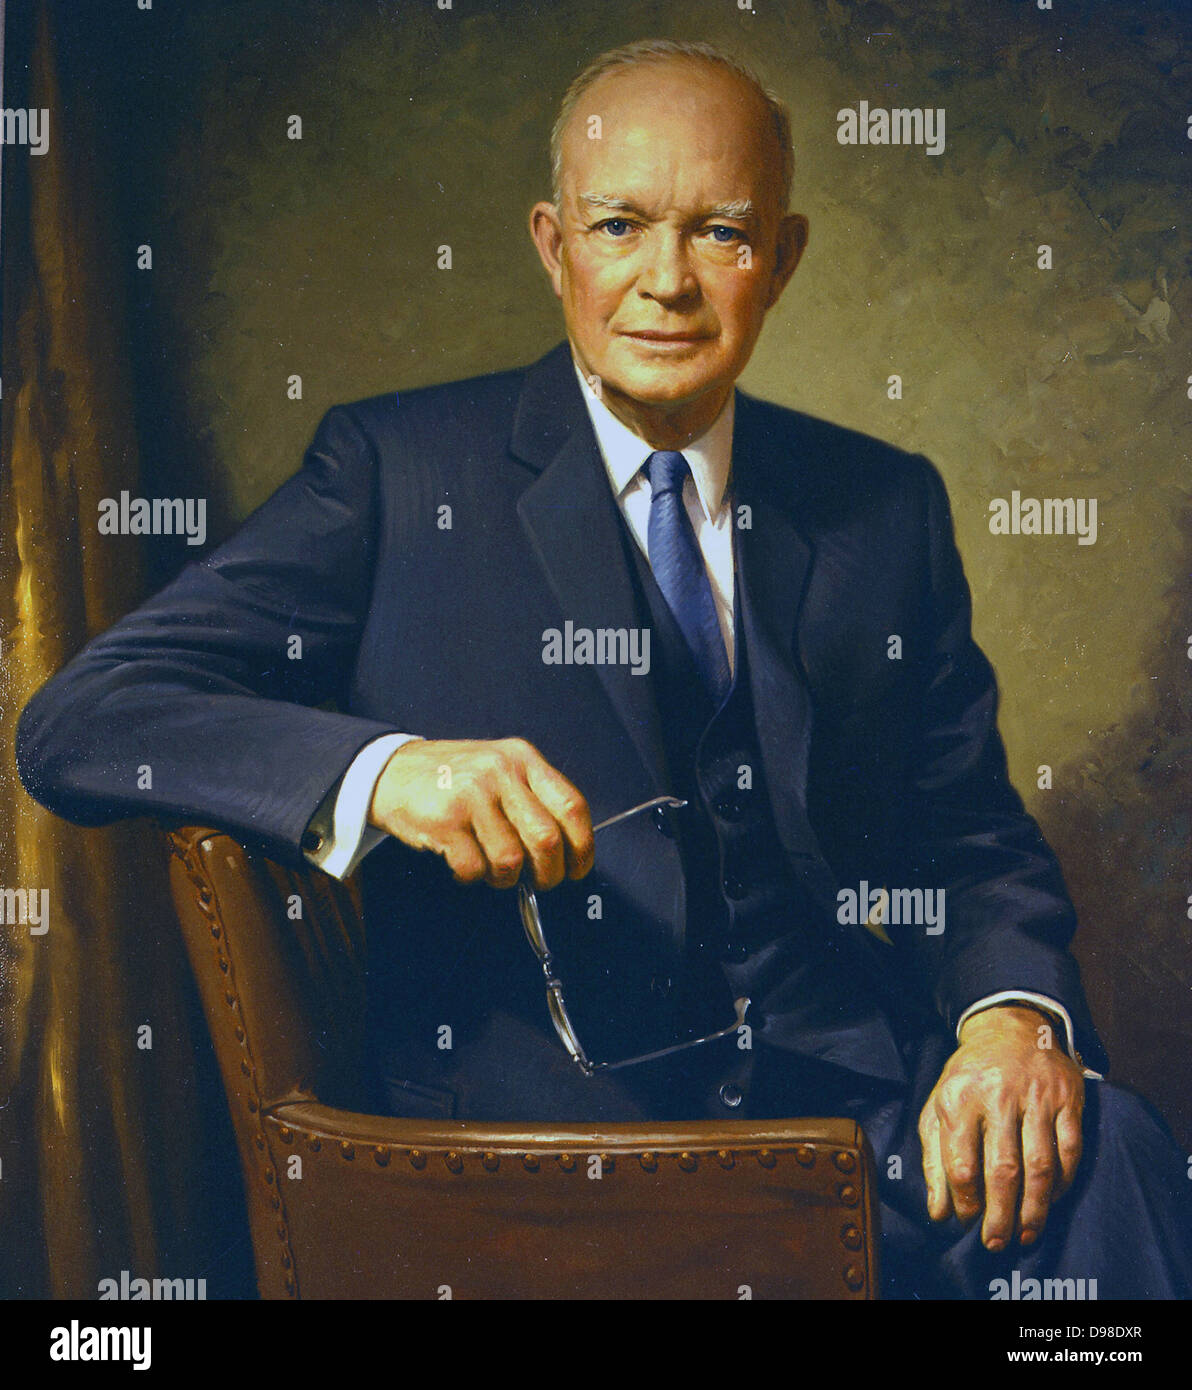 Dwight David Ike Eisenhower 1890 1969 American Soldier And 34th President